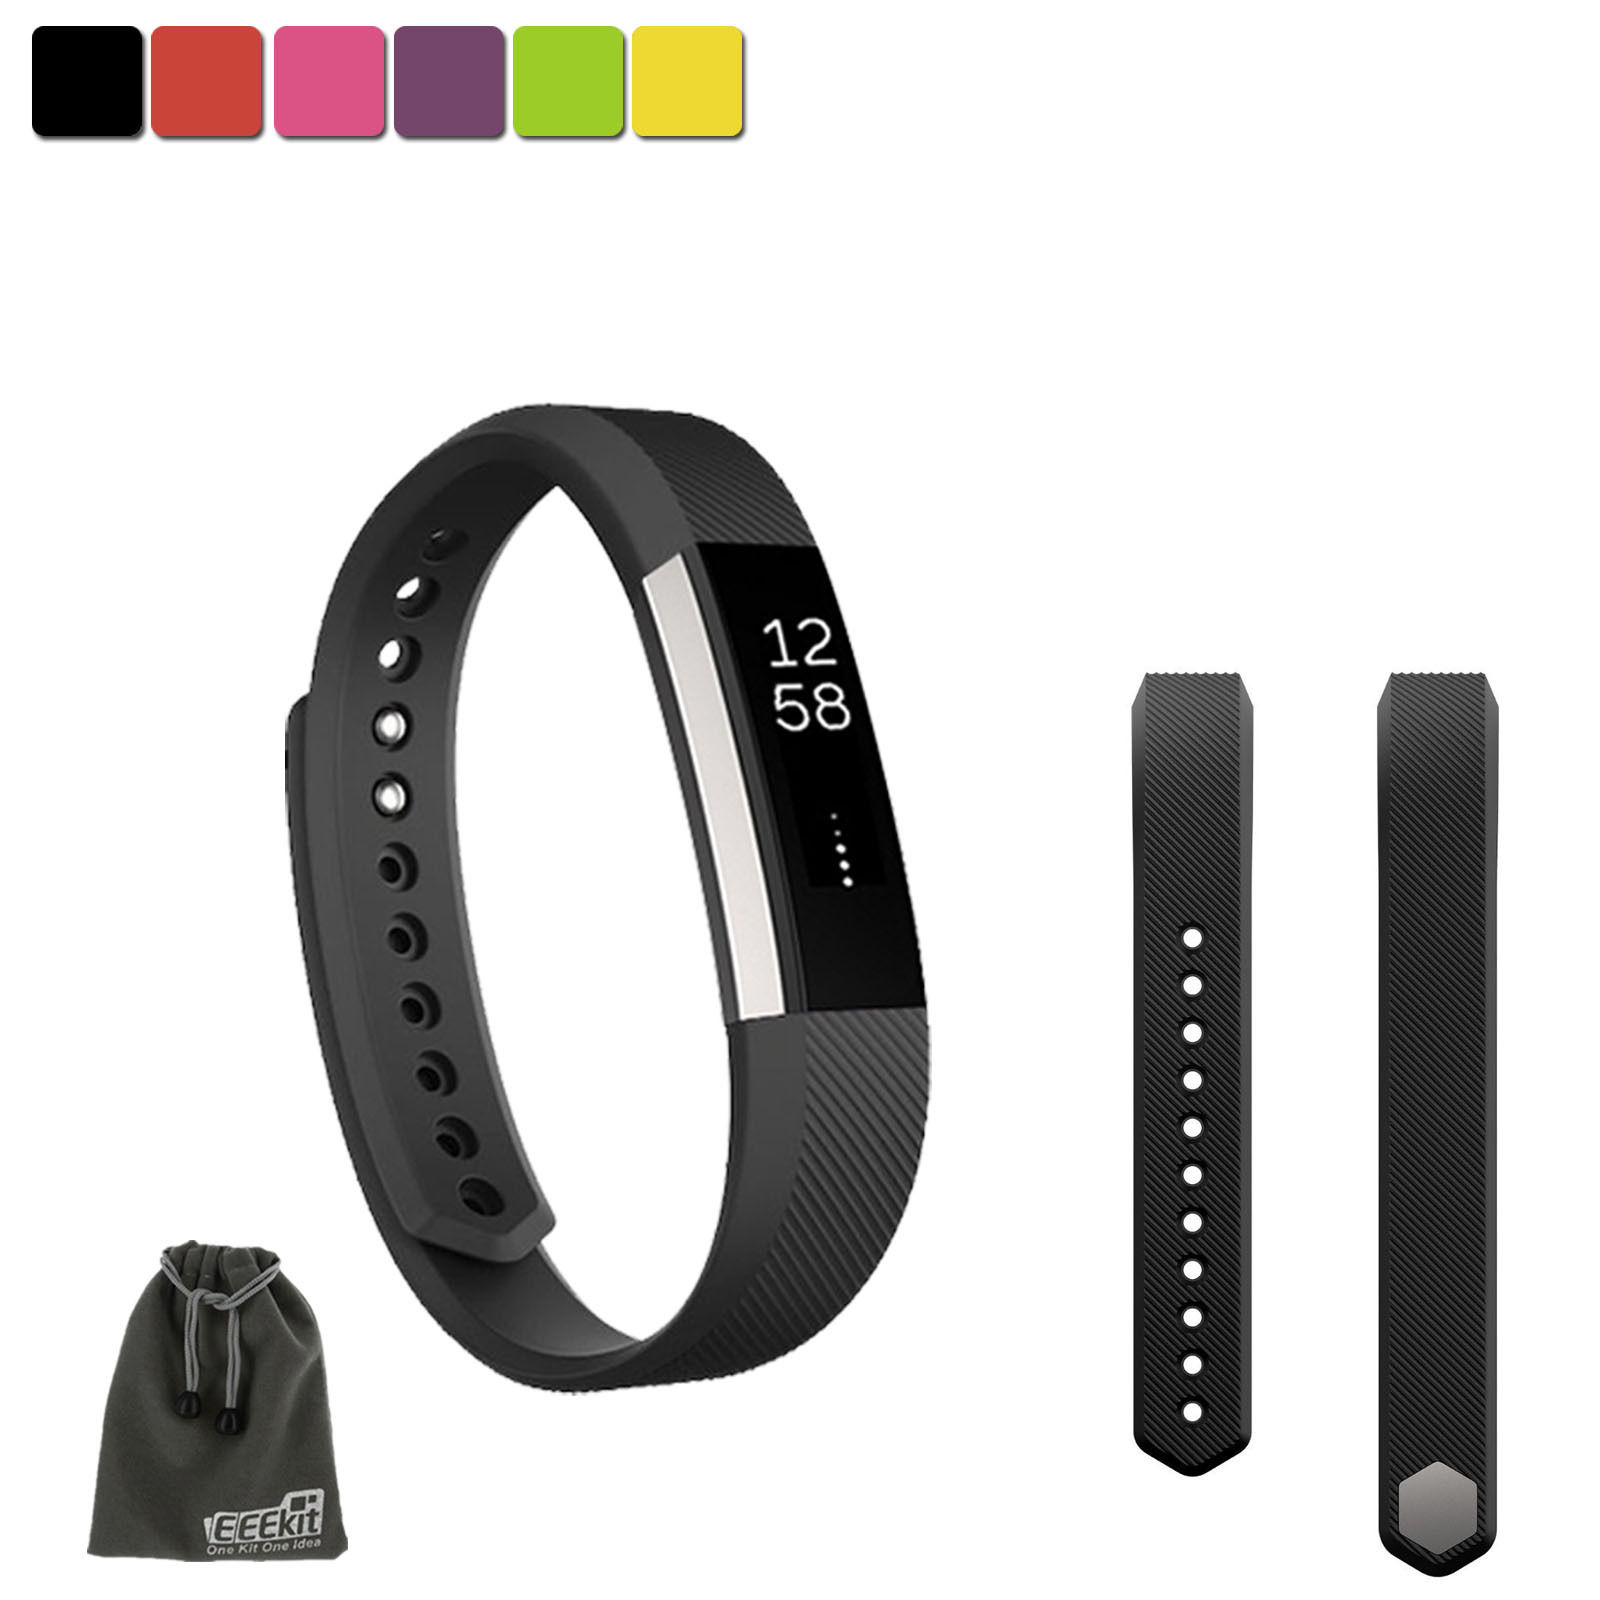 EEEKit SMALL S Size Silicone Replacement Sports Watch Wrist Band Strap w/ Clasp for Fitbit Alta(Black)